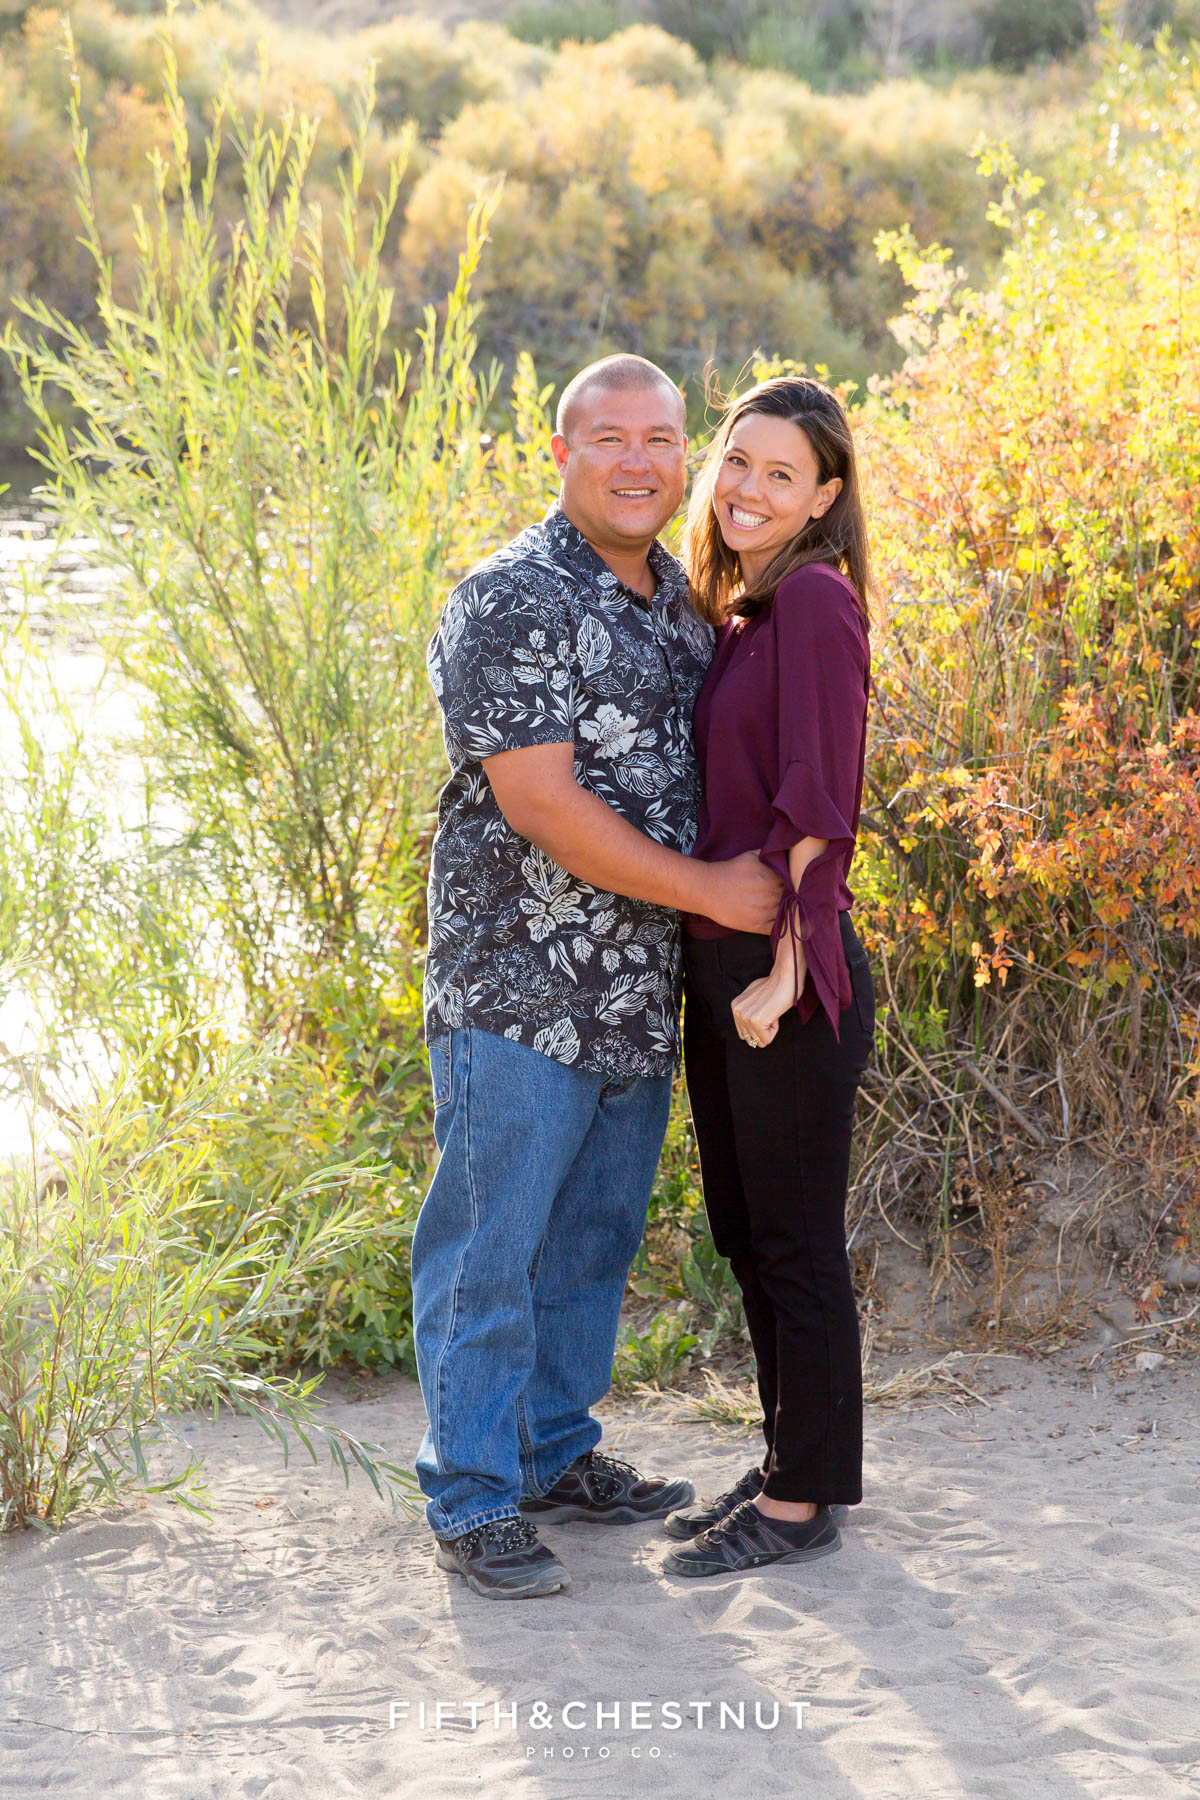 husband and wife snuggle together for vibrant fall portraits at Mayberry Park